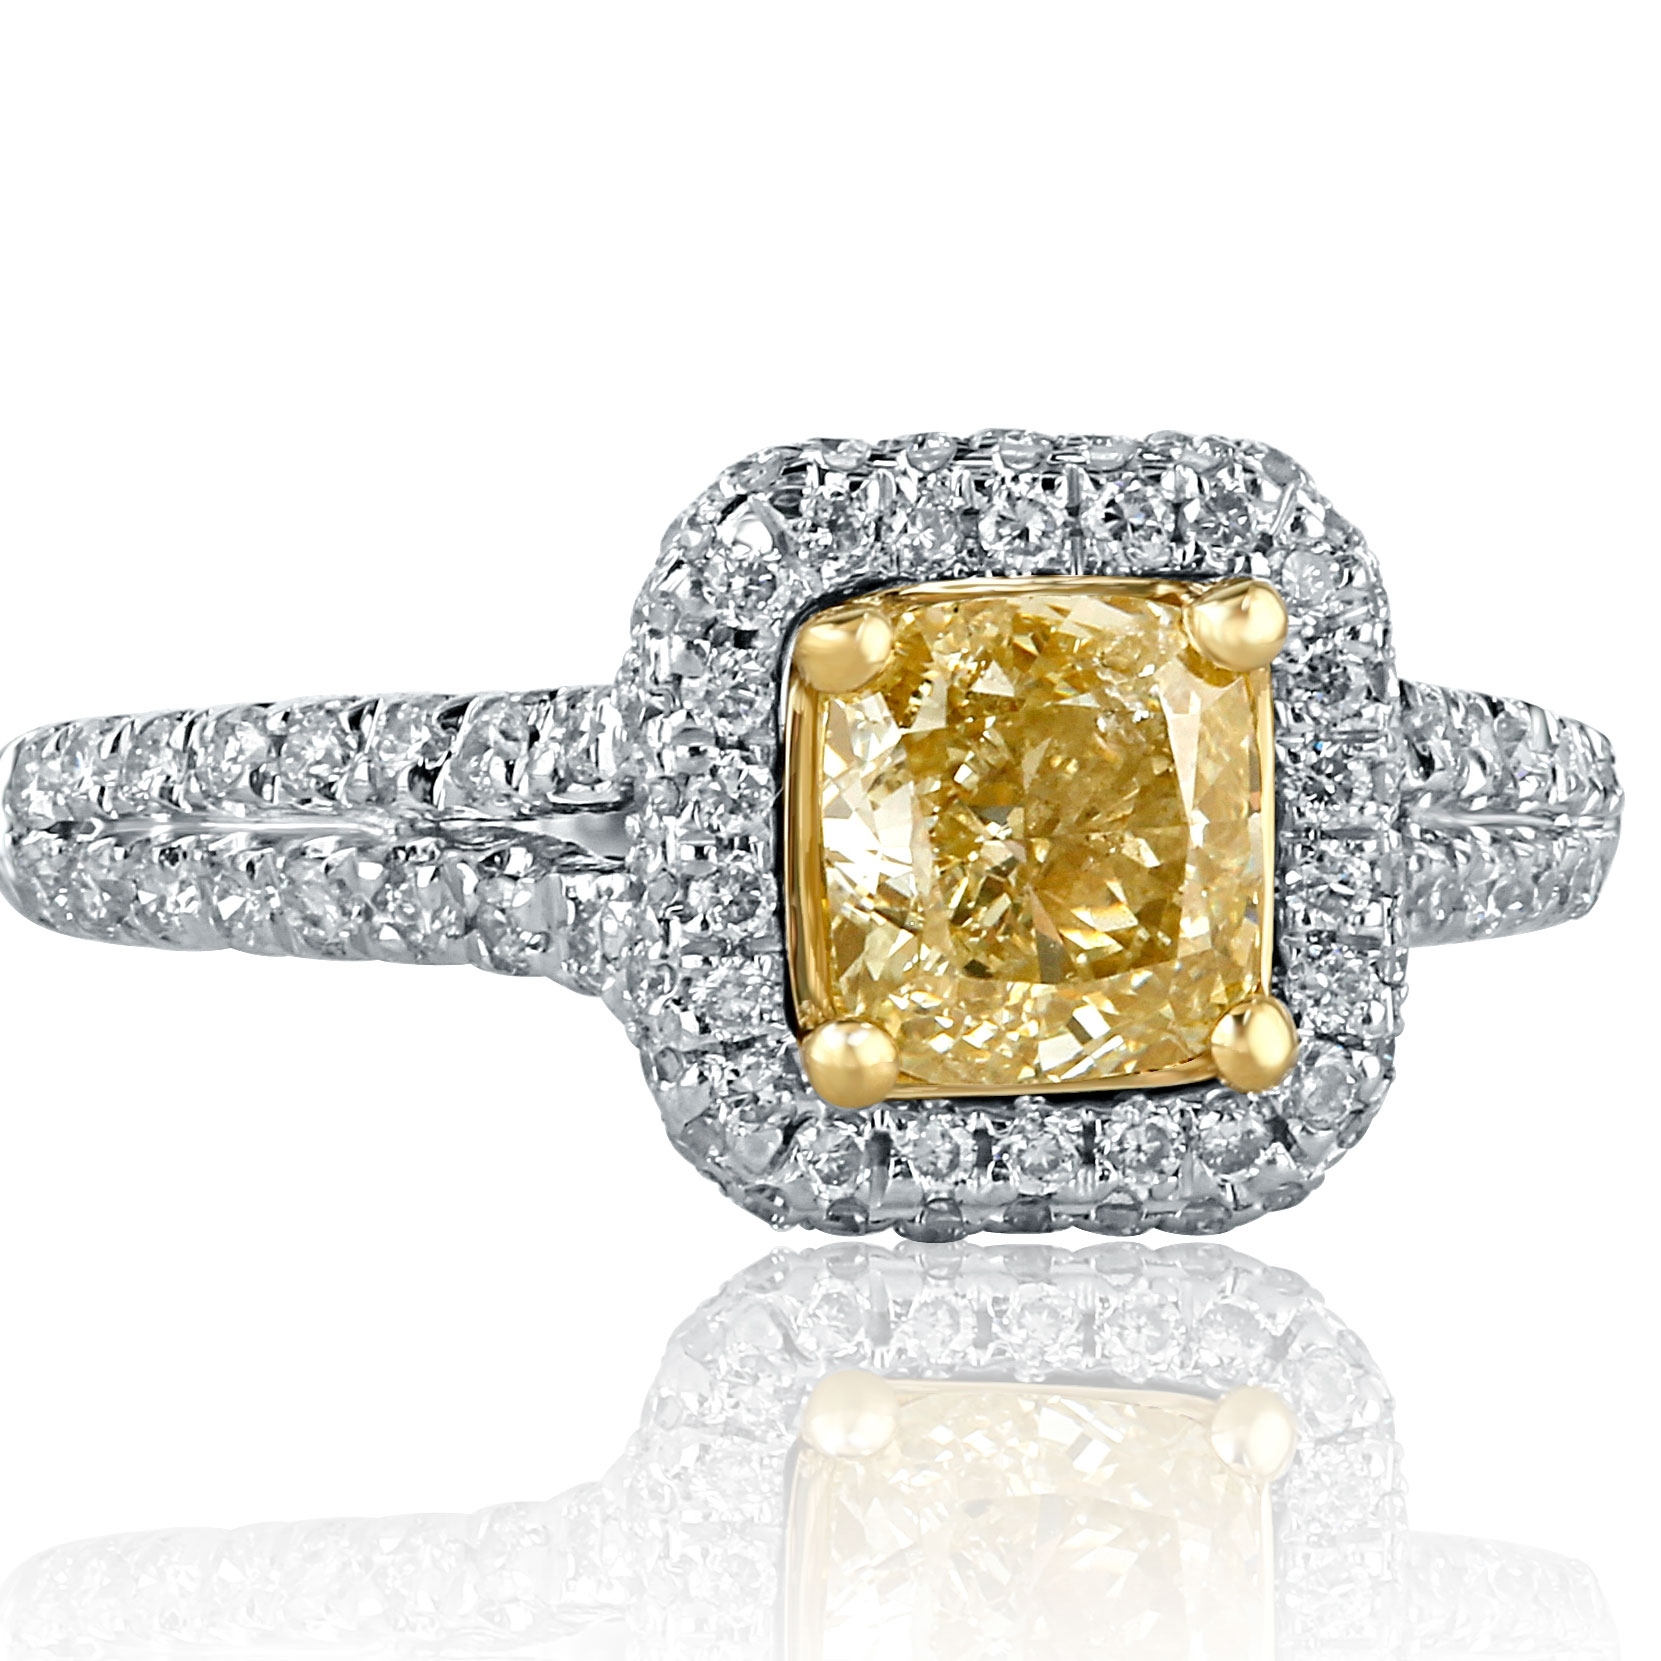 Details About 1 57 Ct Natural Cushion Cut Yellow Diamond Engagement Ring Halo 18k White Gold